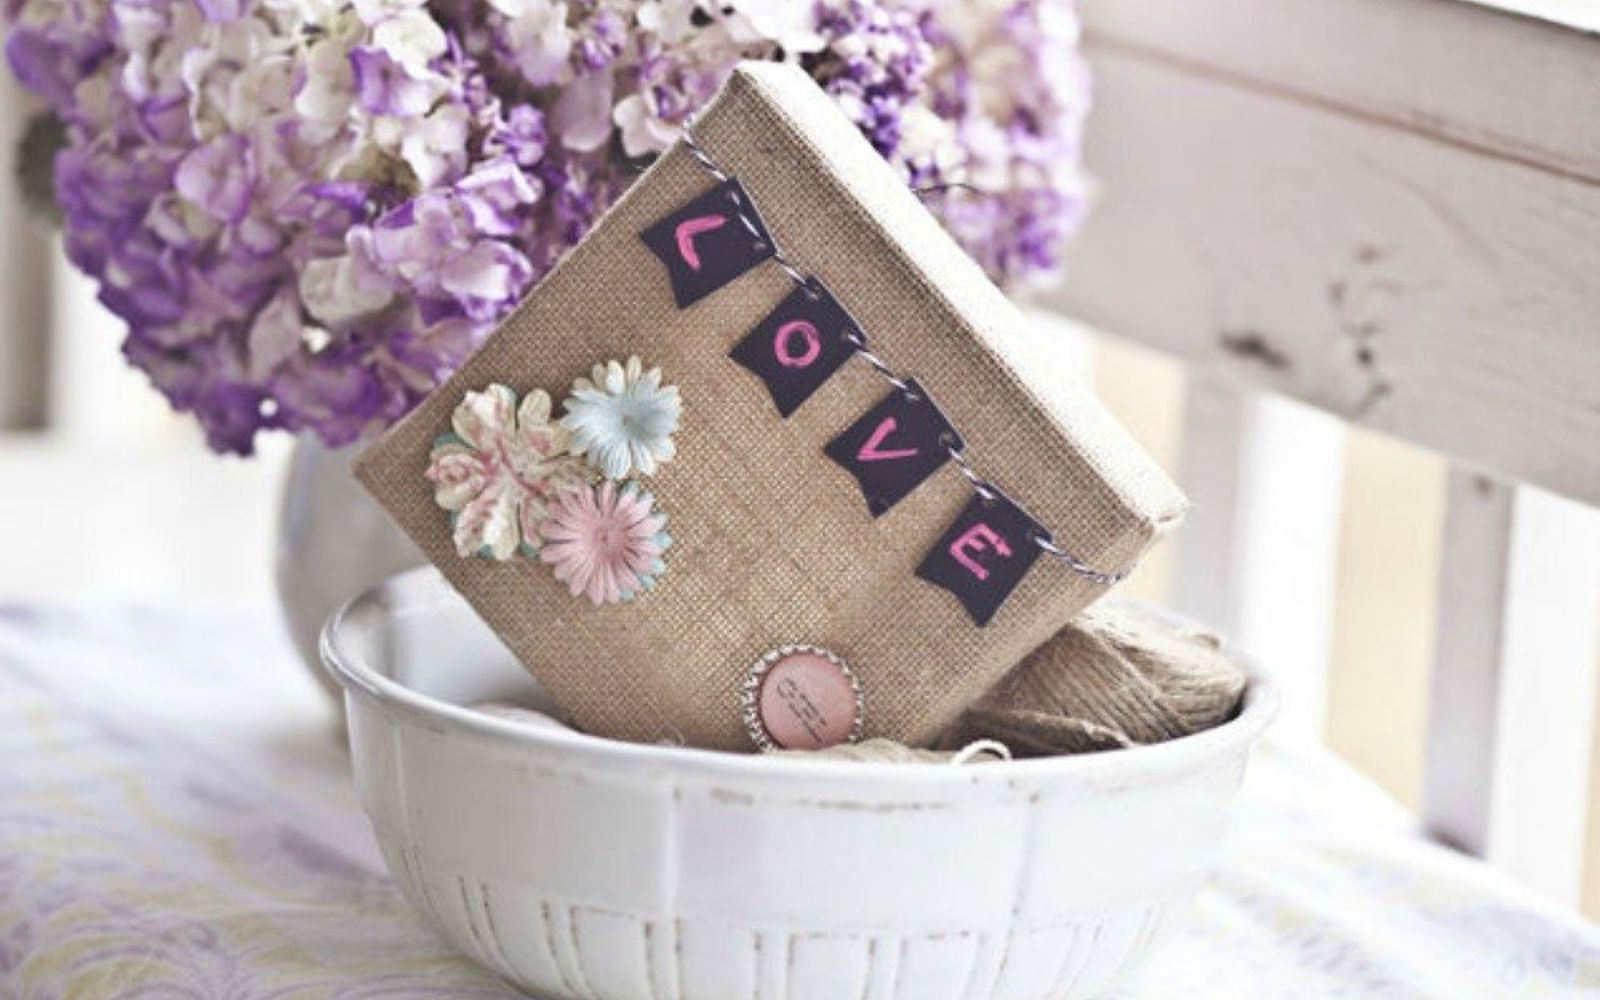 s save your bottle caps for these x crazy cool ideas, A delicate touch to burlap canvas art